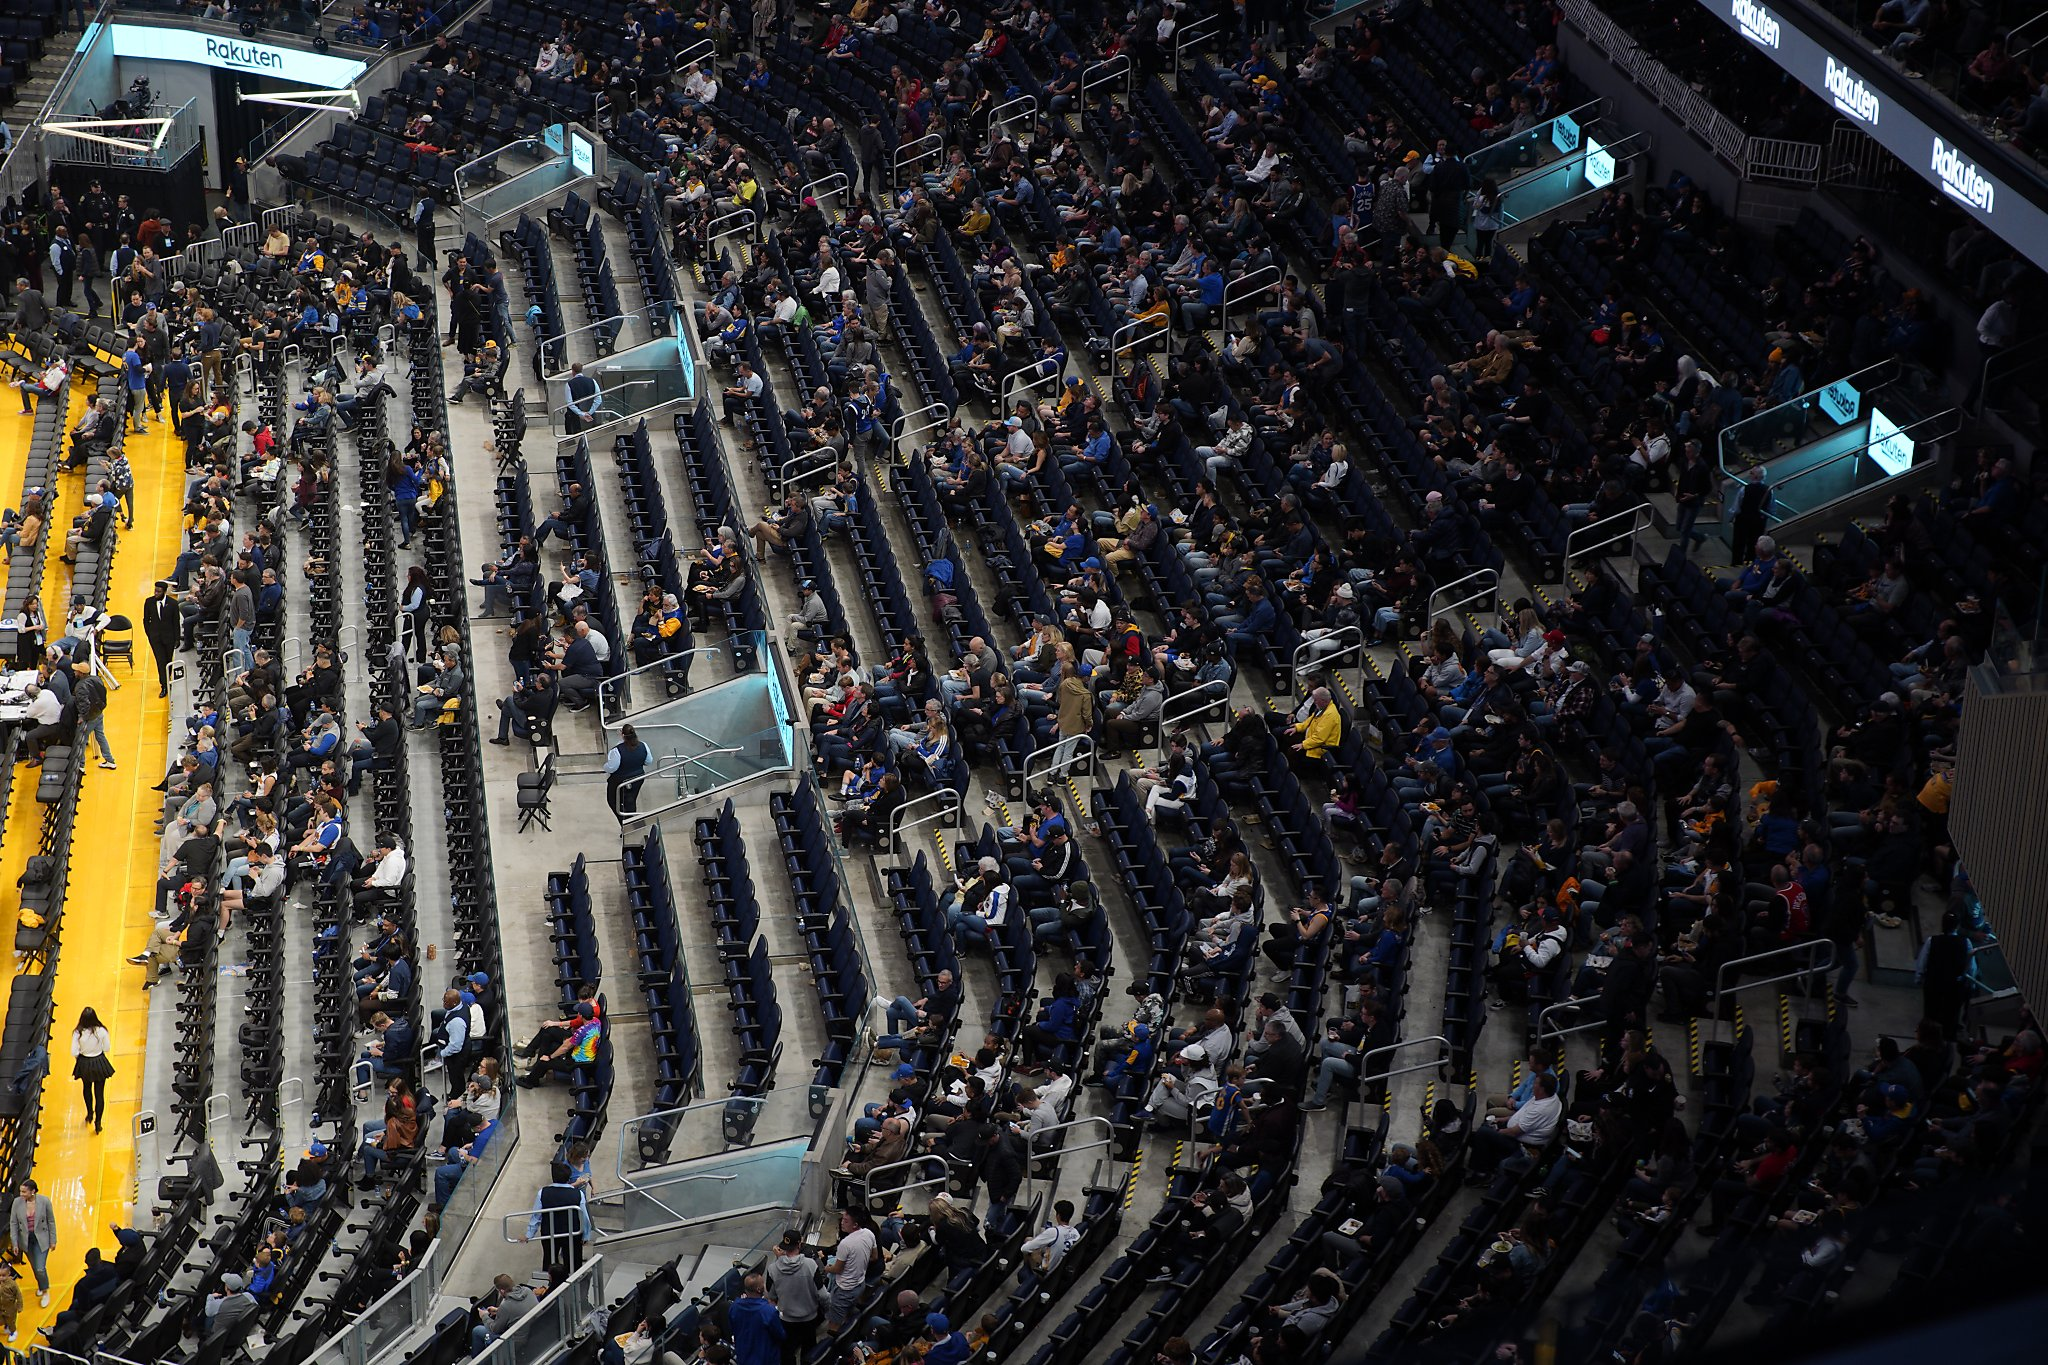 San Francisco might bar Warriors games due to coronavirus, supervisor says